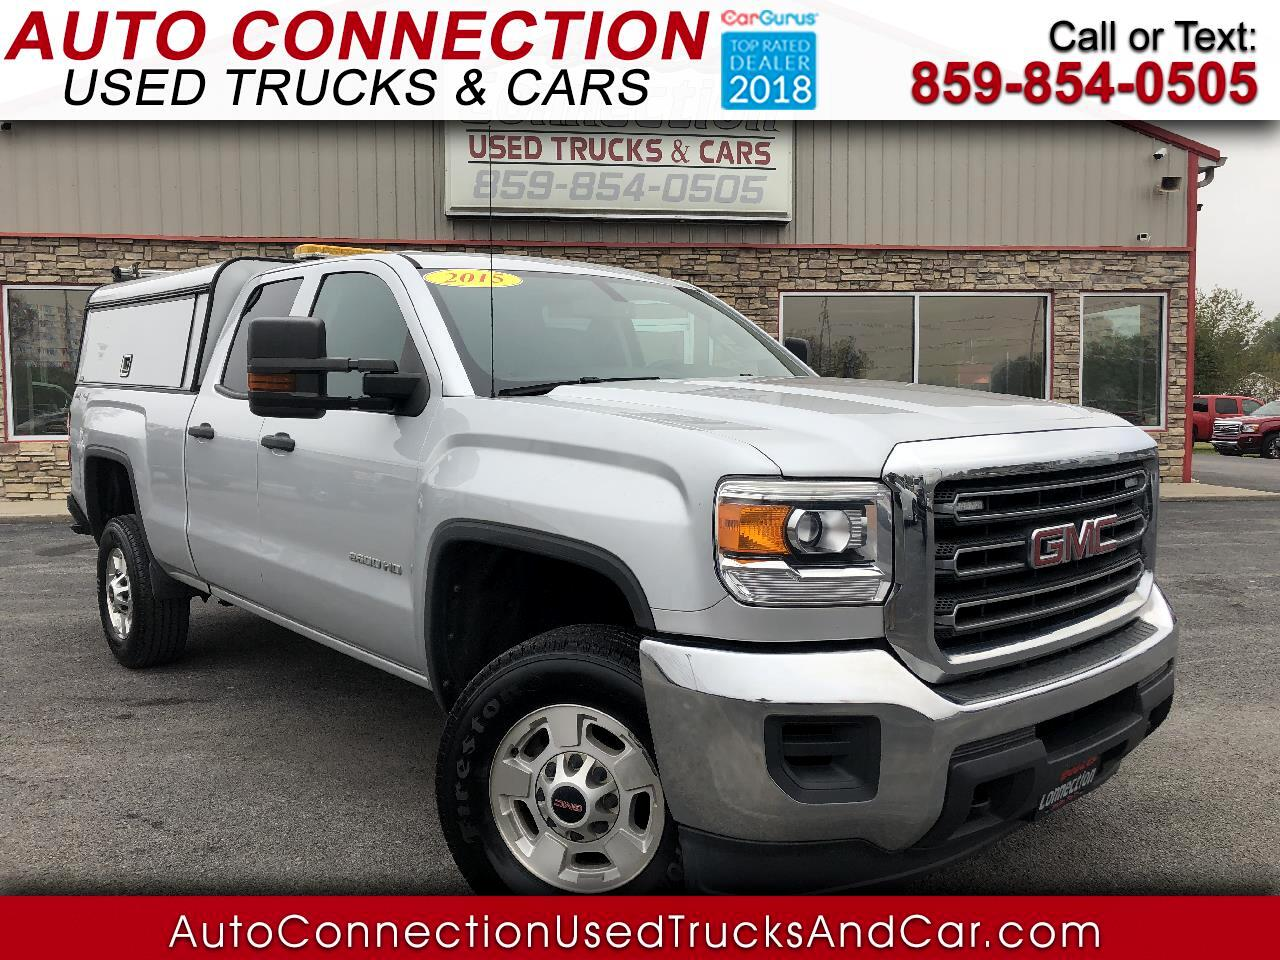 2015 GMC Sierra 2500HD available WiFi 4WD Double Cab 144.2""